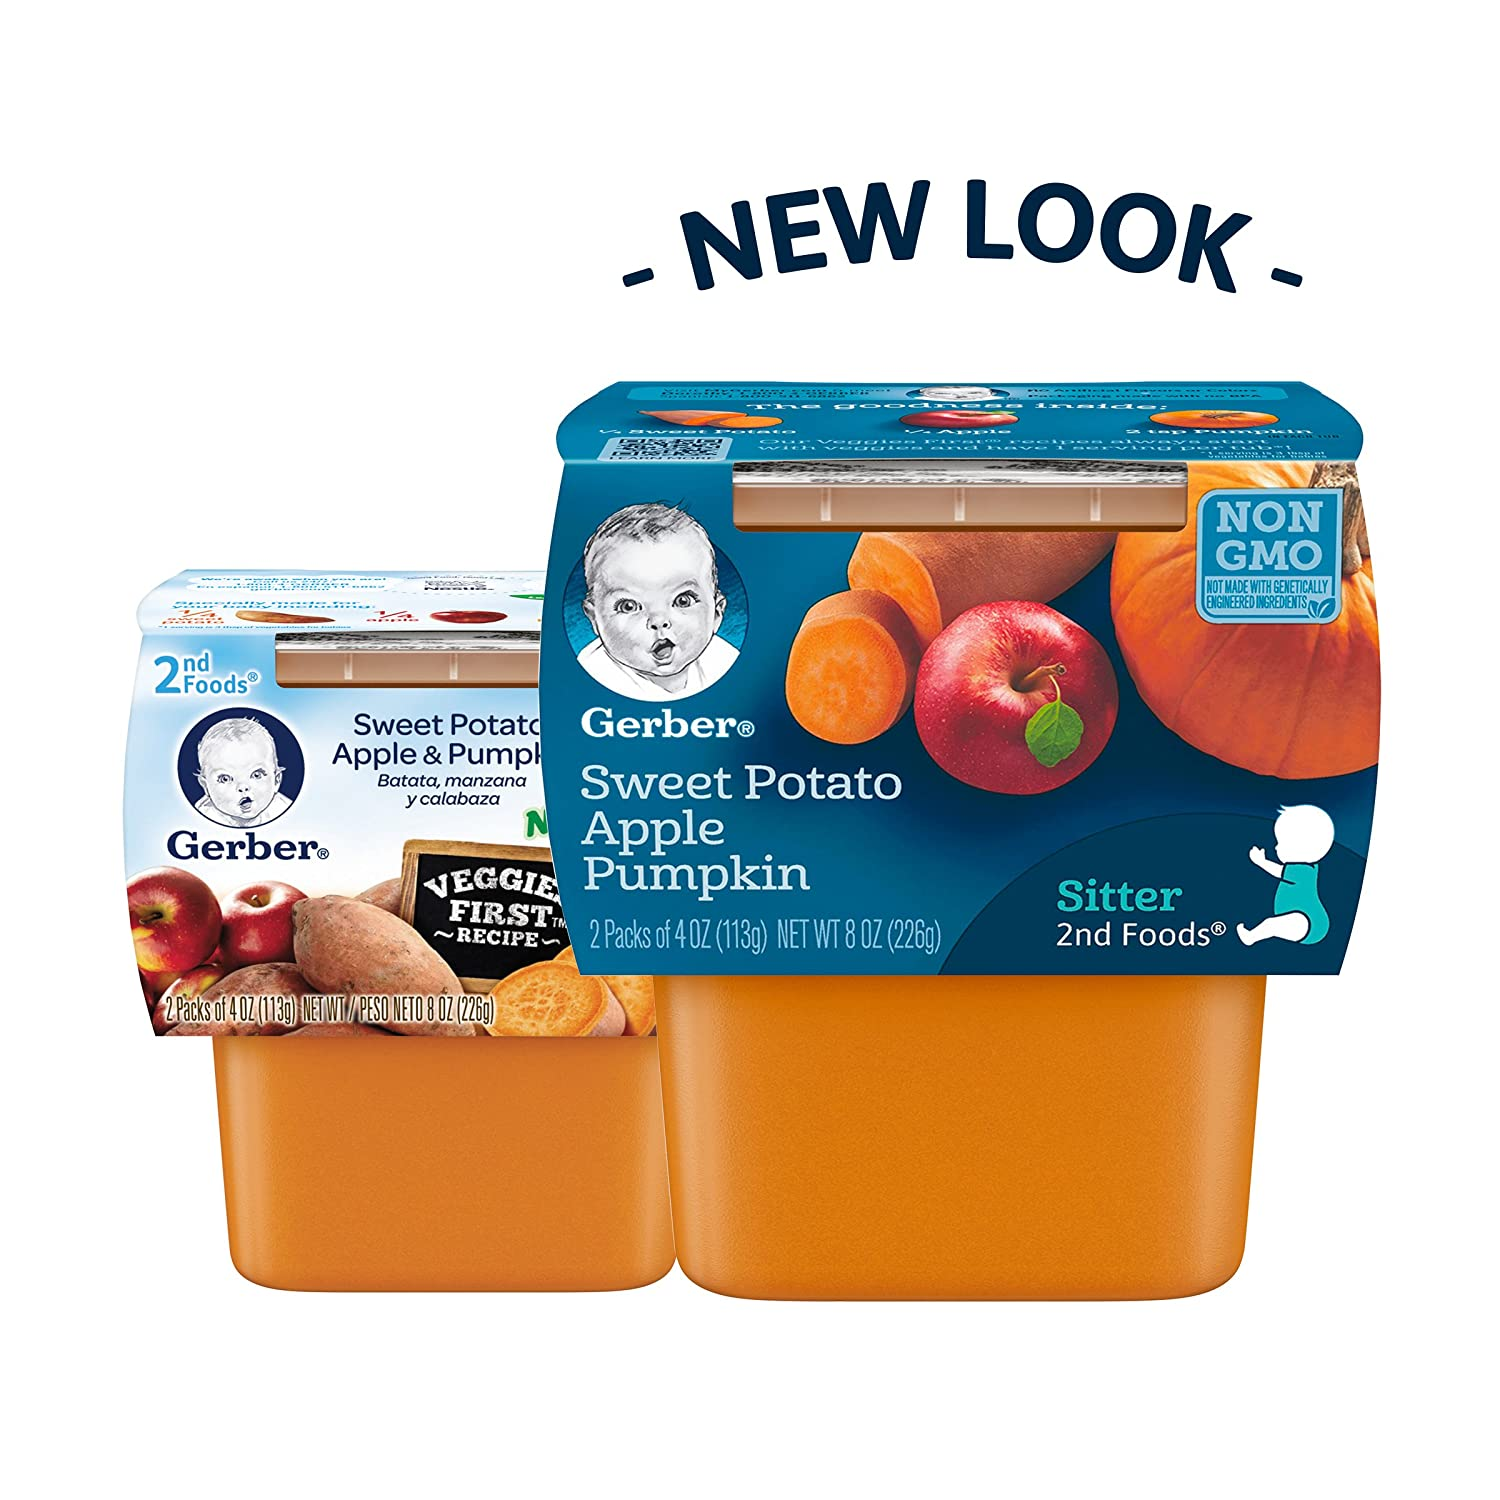 Gerber 2nd Foods Sweet Potato Apple Pumpkin Baby Food, 2 count, 8 oz, (Pack of 8): Amazon.com: Grocery & Gourmet Food